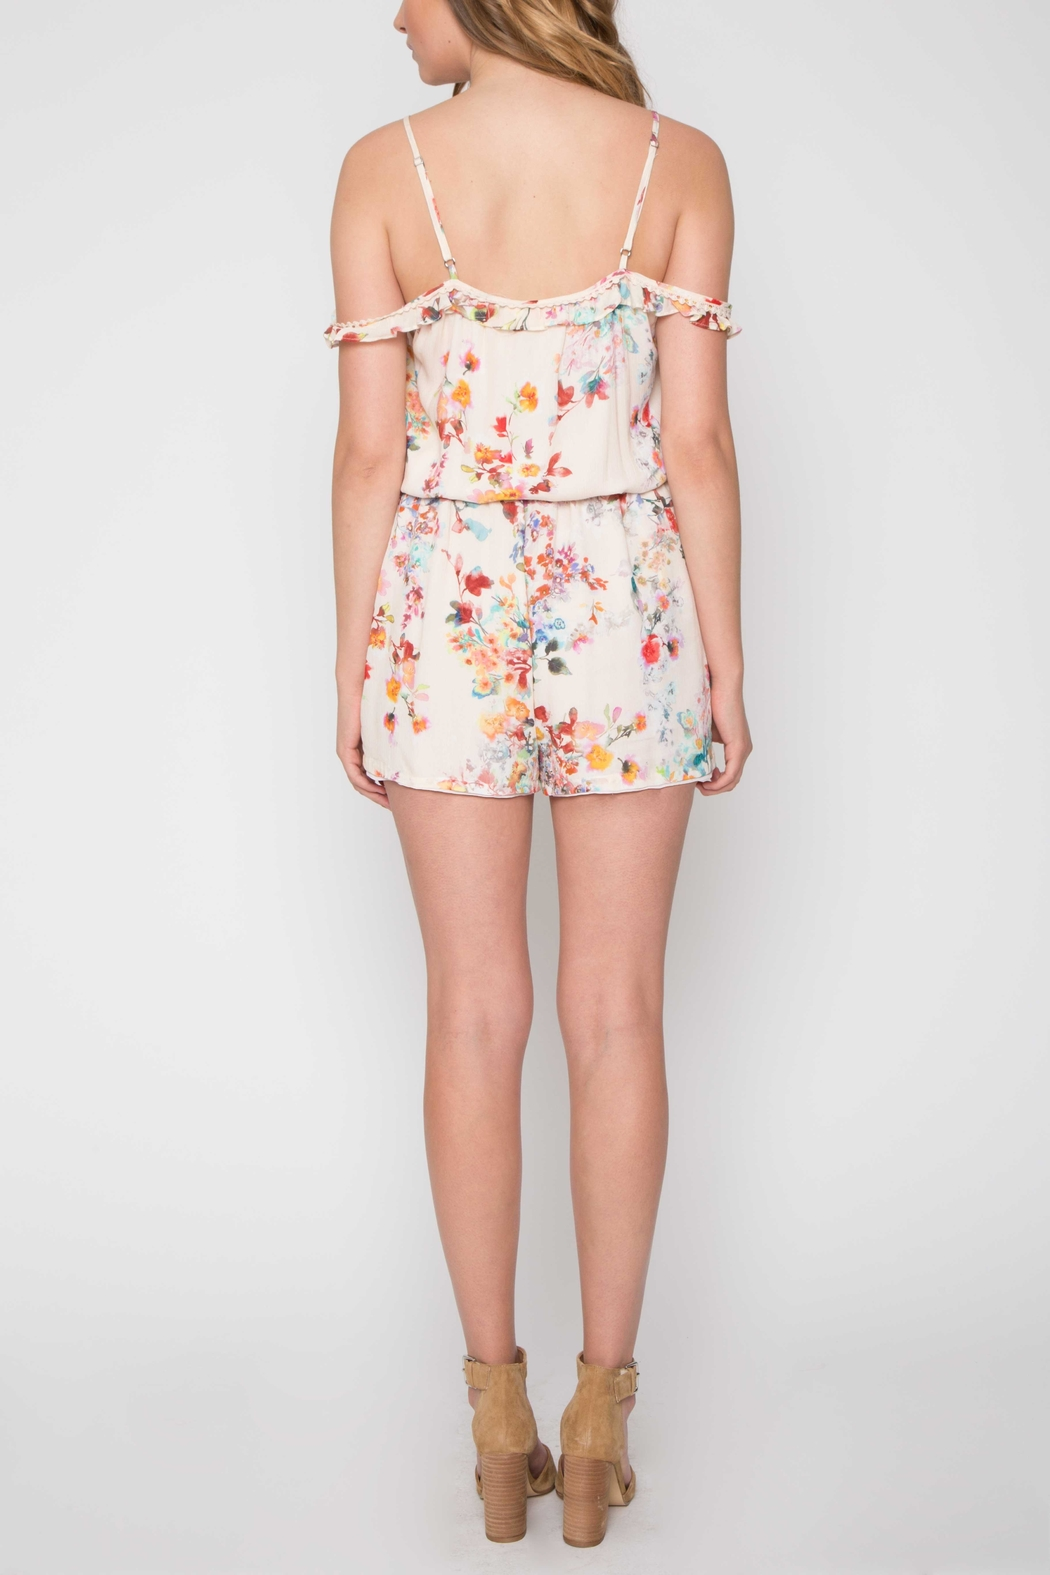 Willow & Clay Floral Daydream Romper - Front Full Image